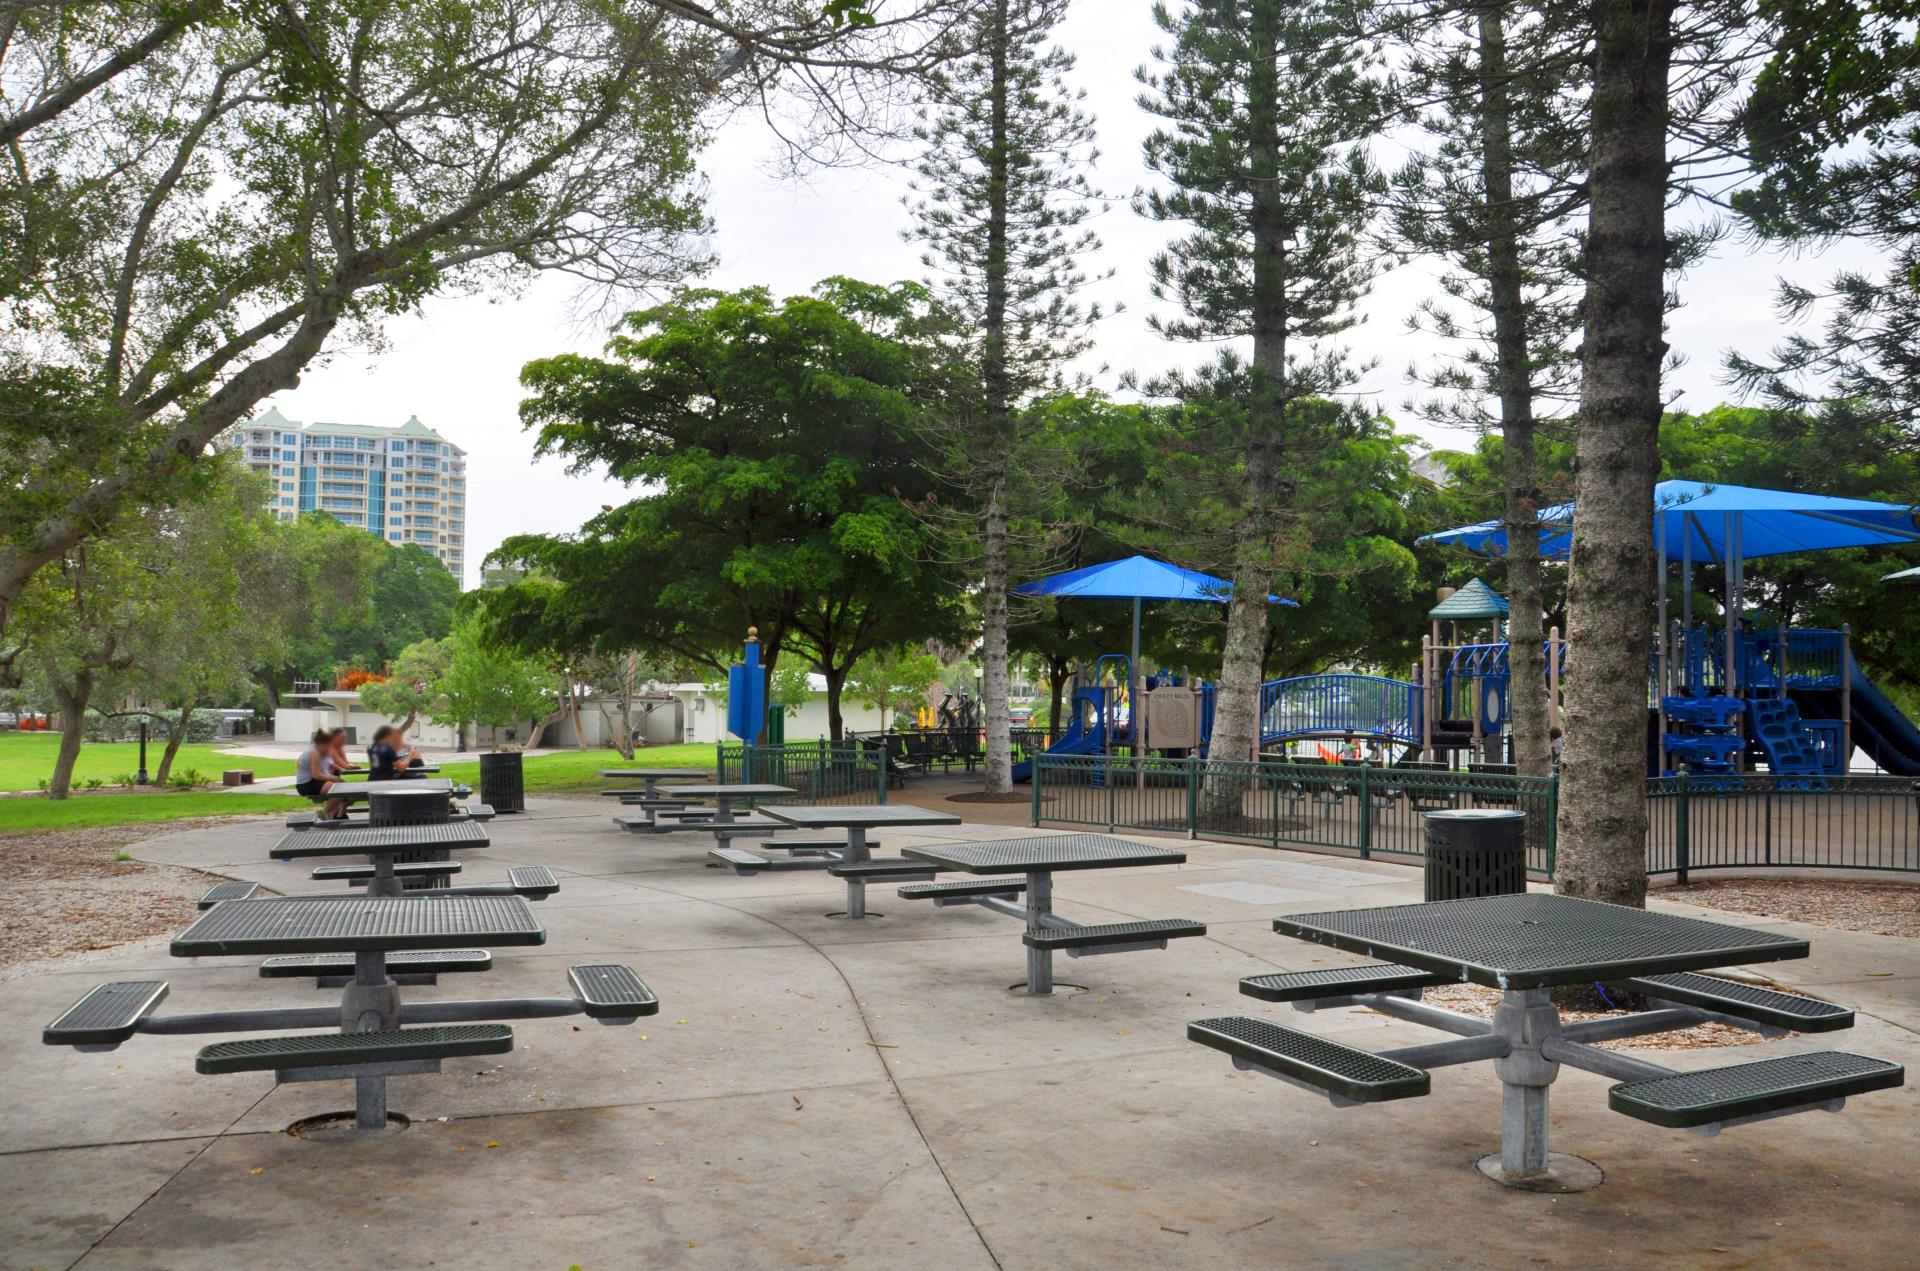 Bayfront Park picnic area by playground